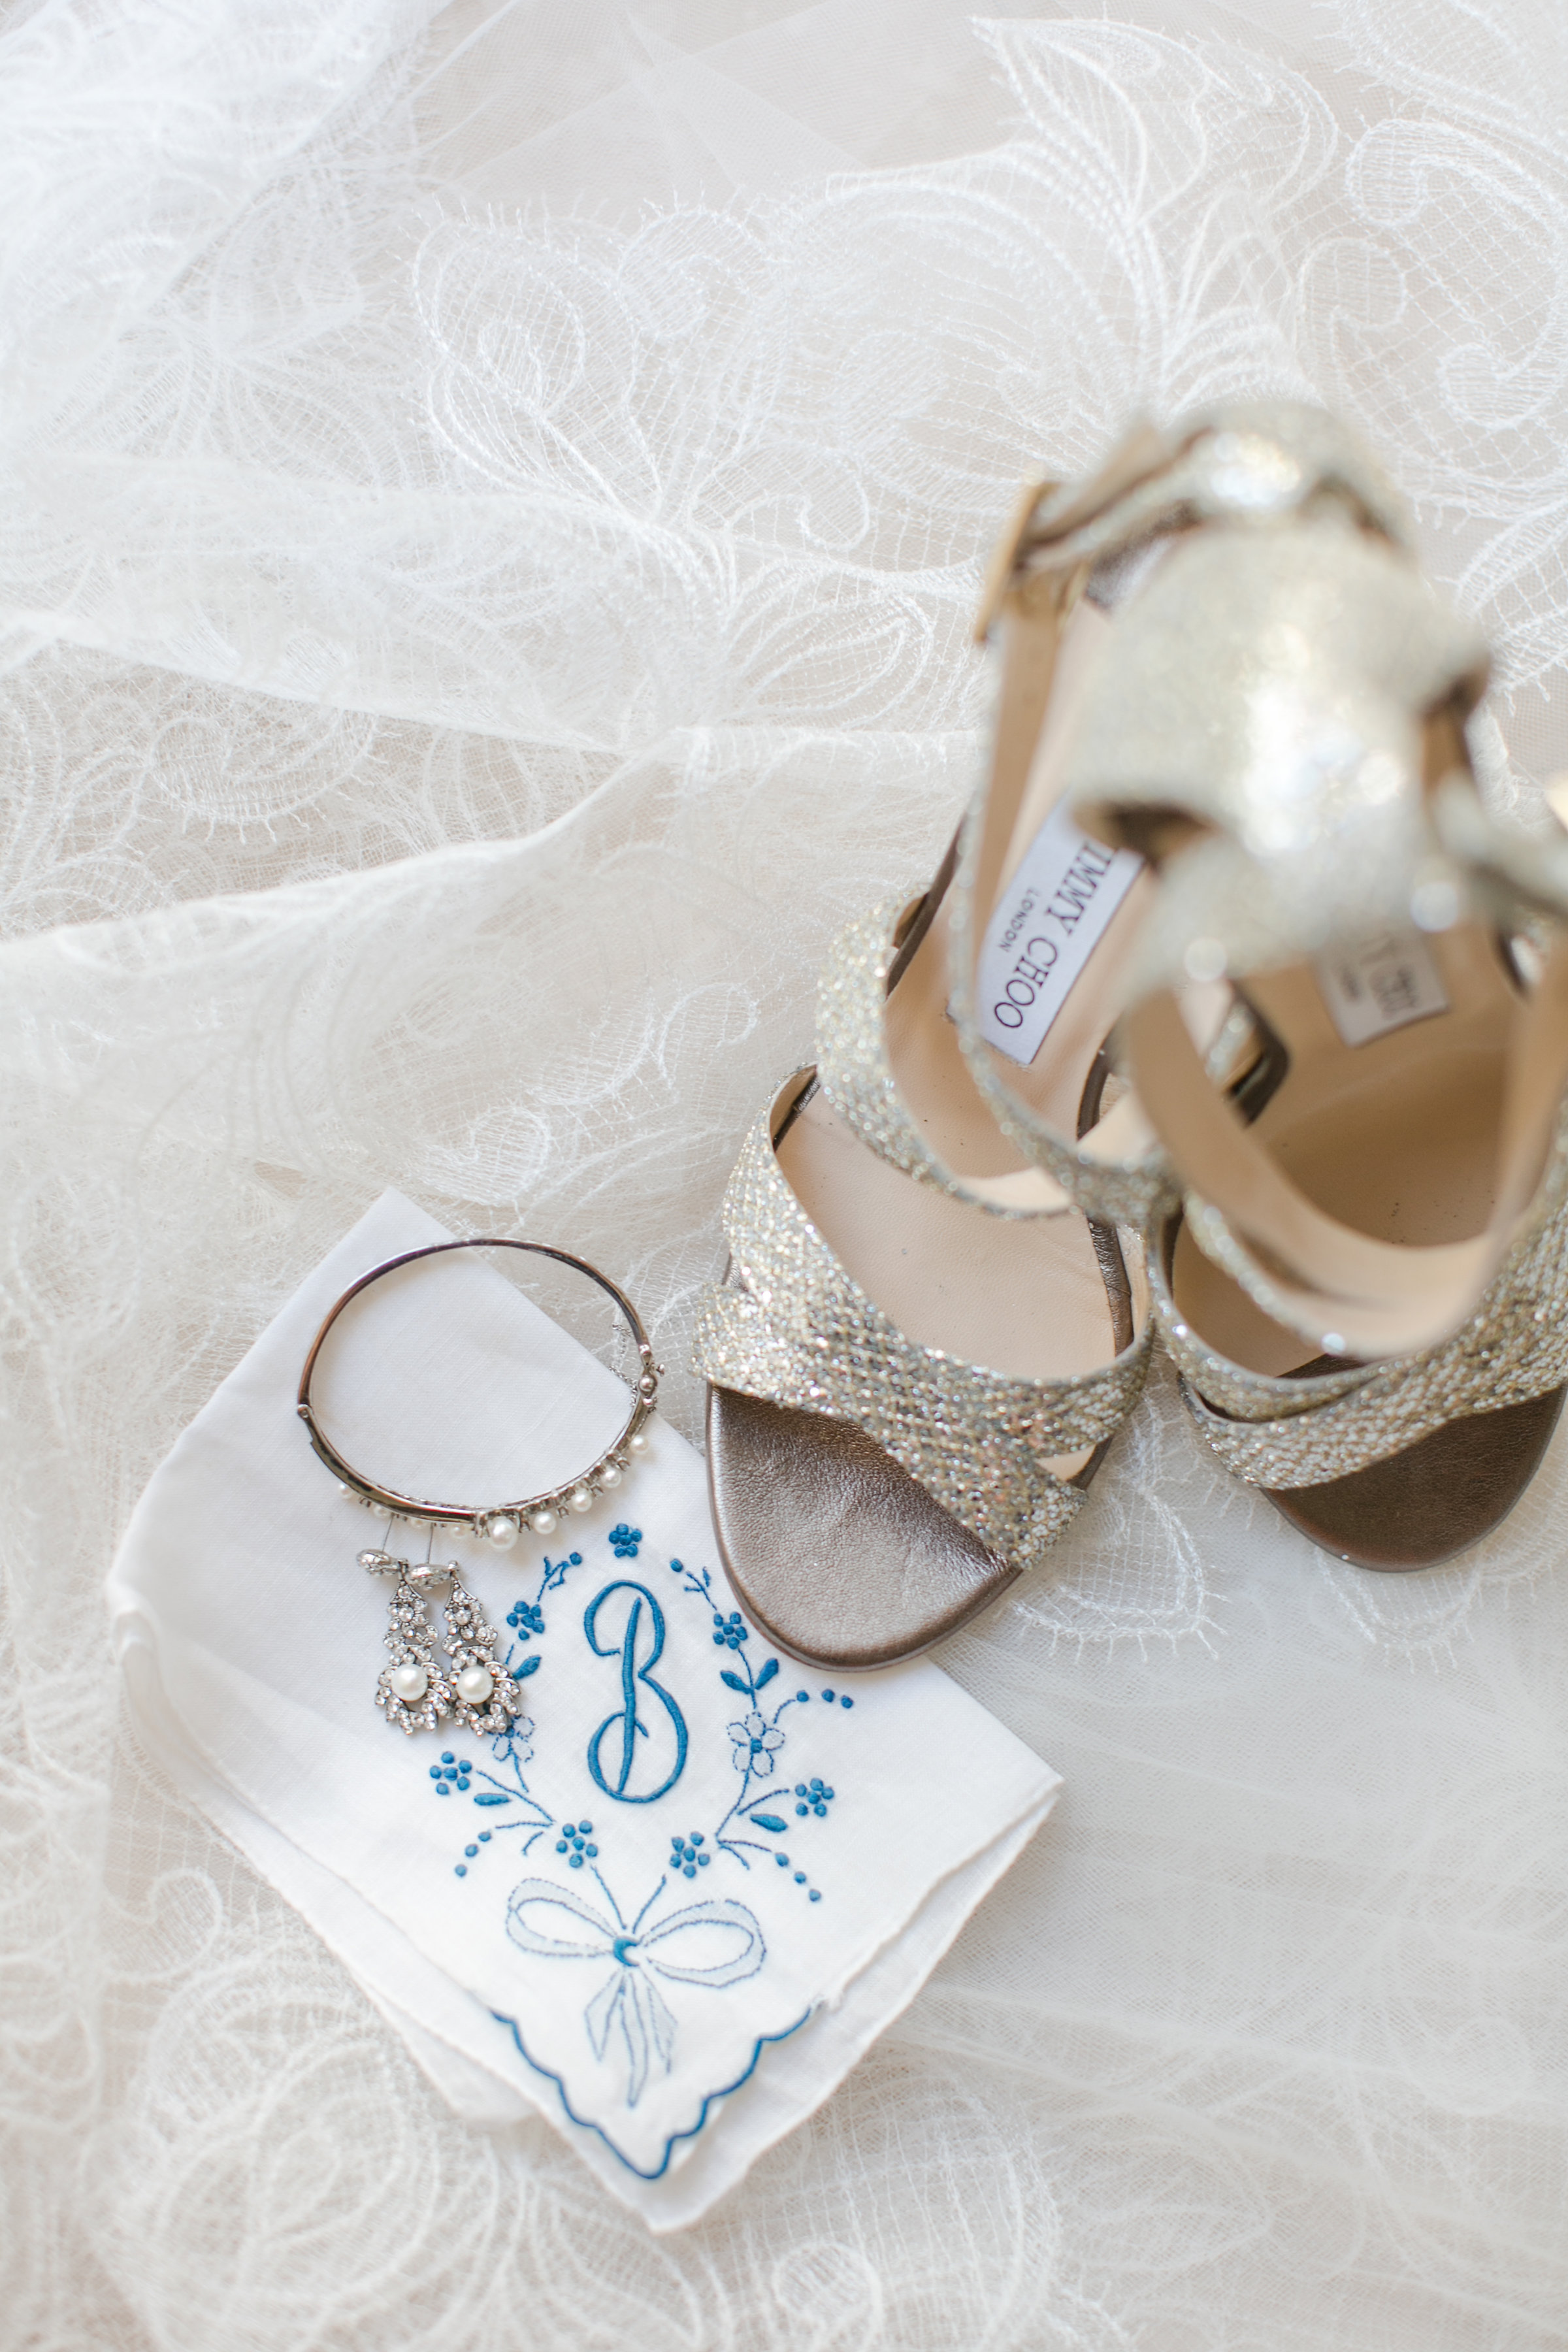 Shoe Details - San Jose Del Cabo, Mexico - Spring Wedding - Julian Leaver Events